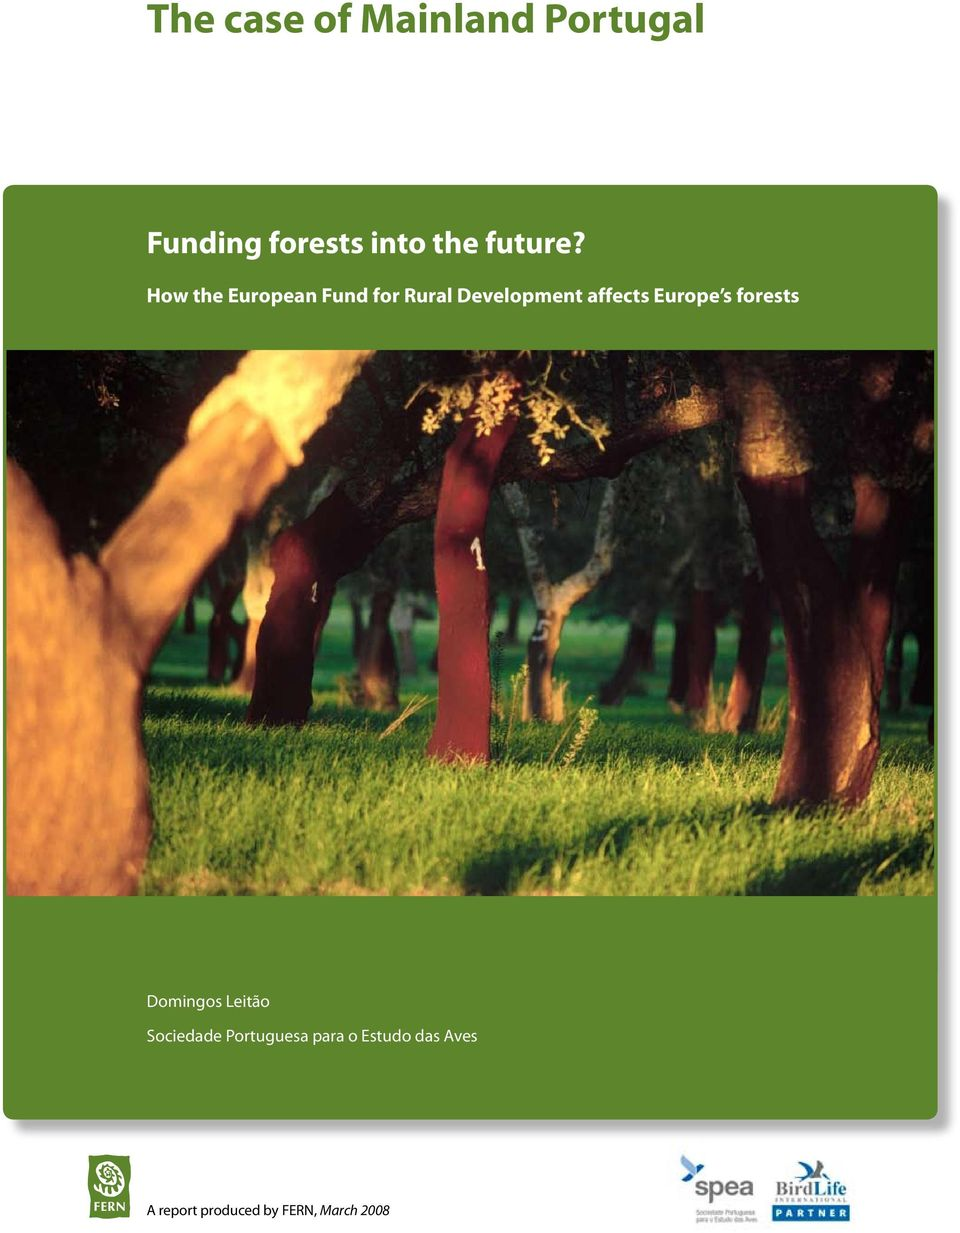 How the European Fund for Rural Development affects